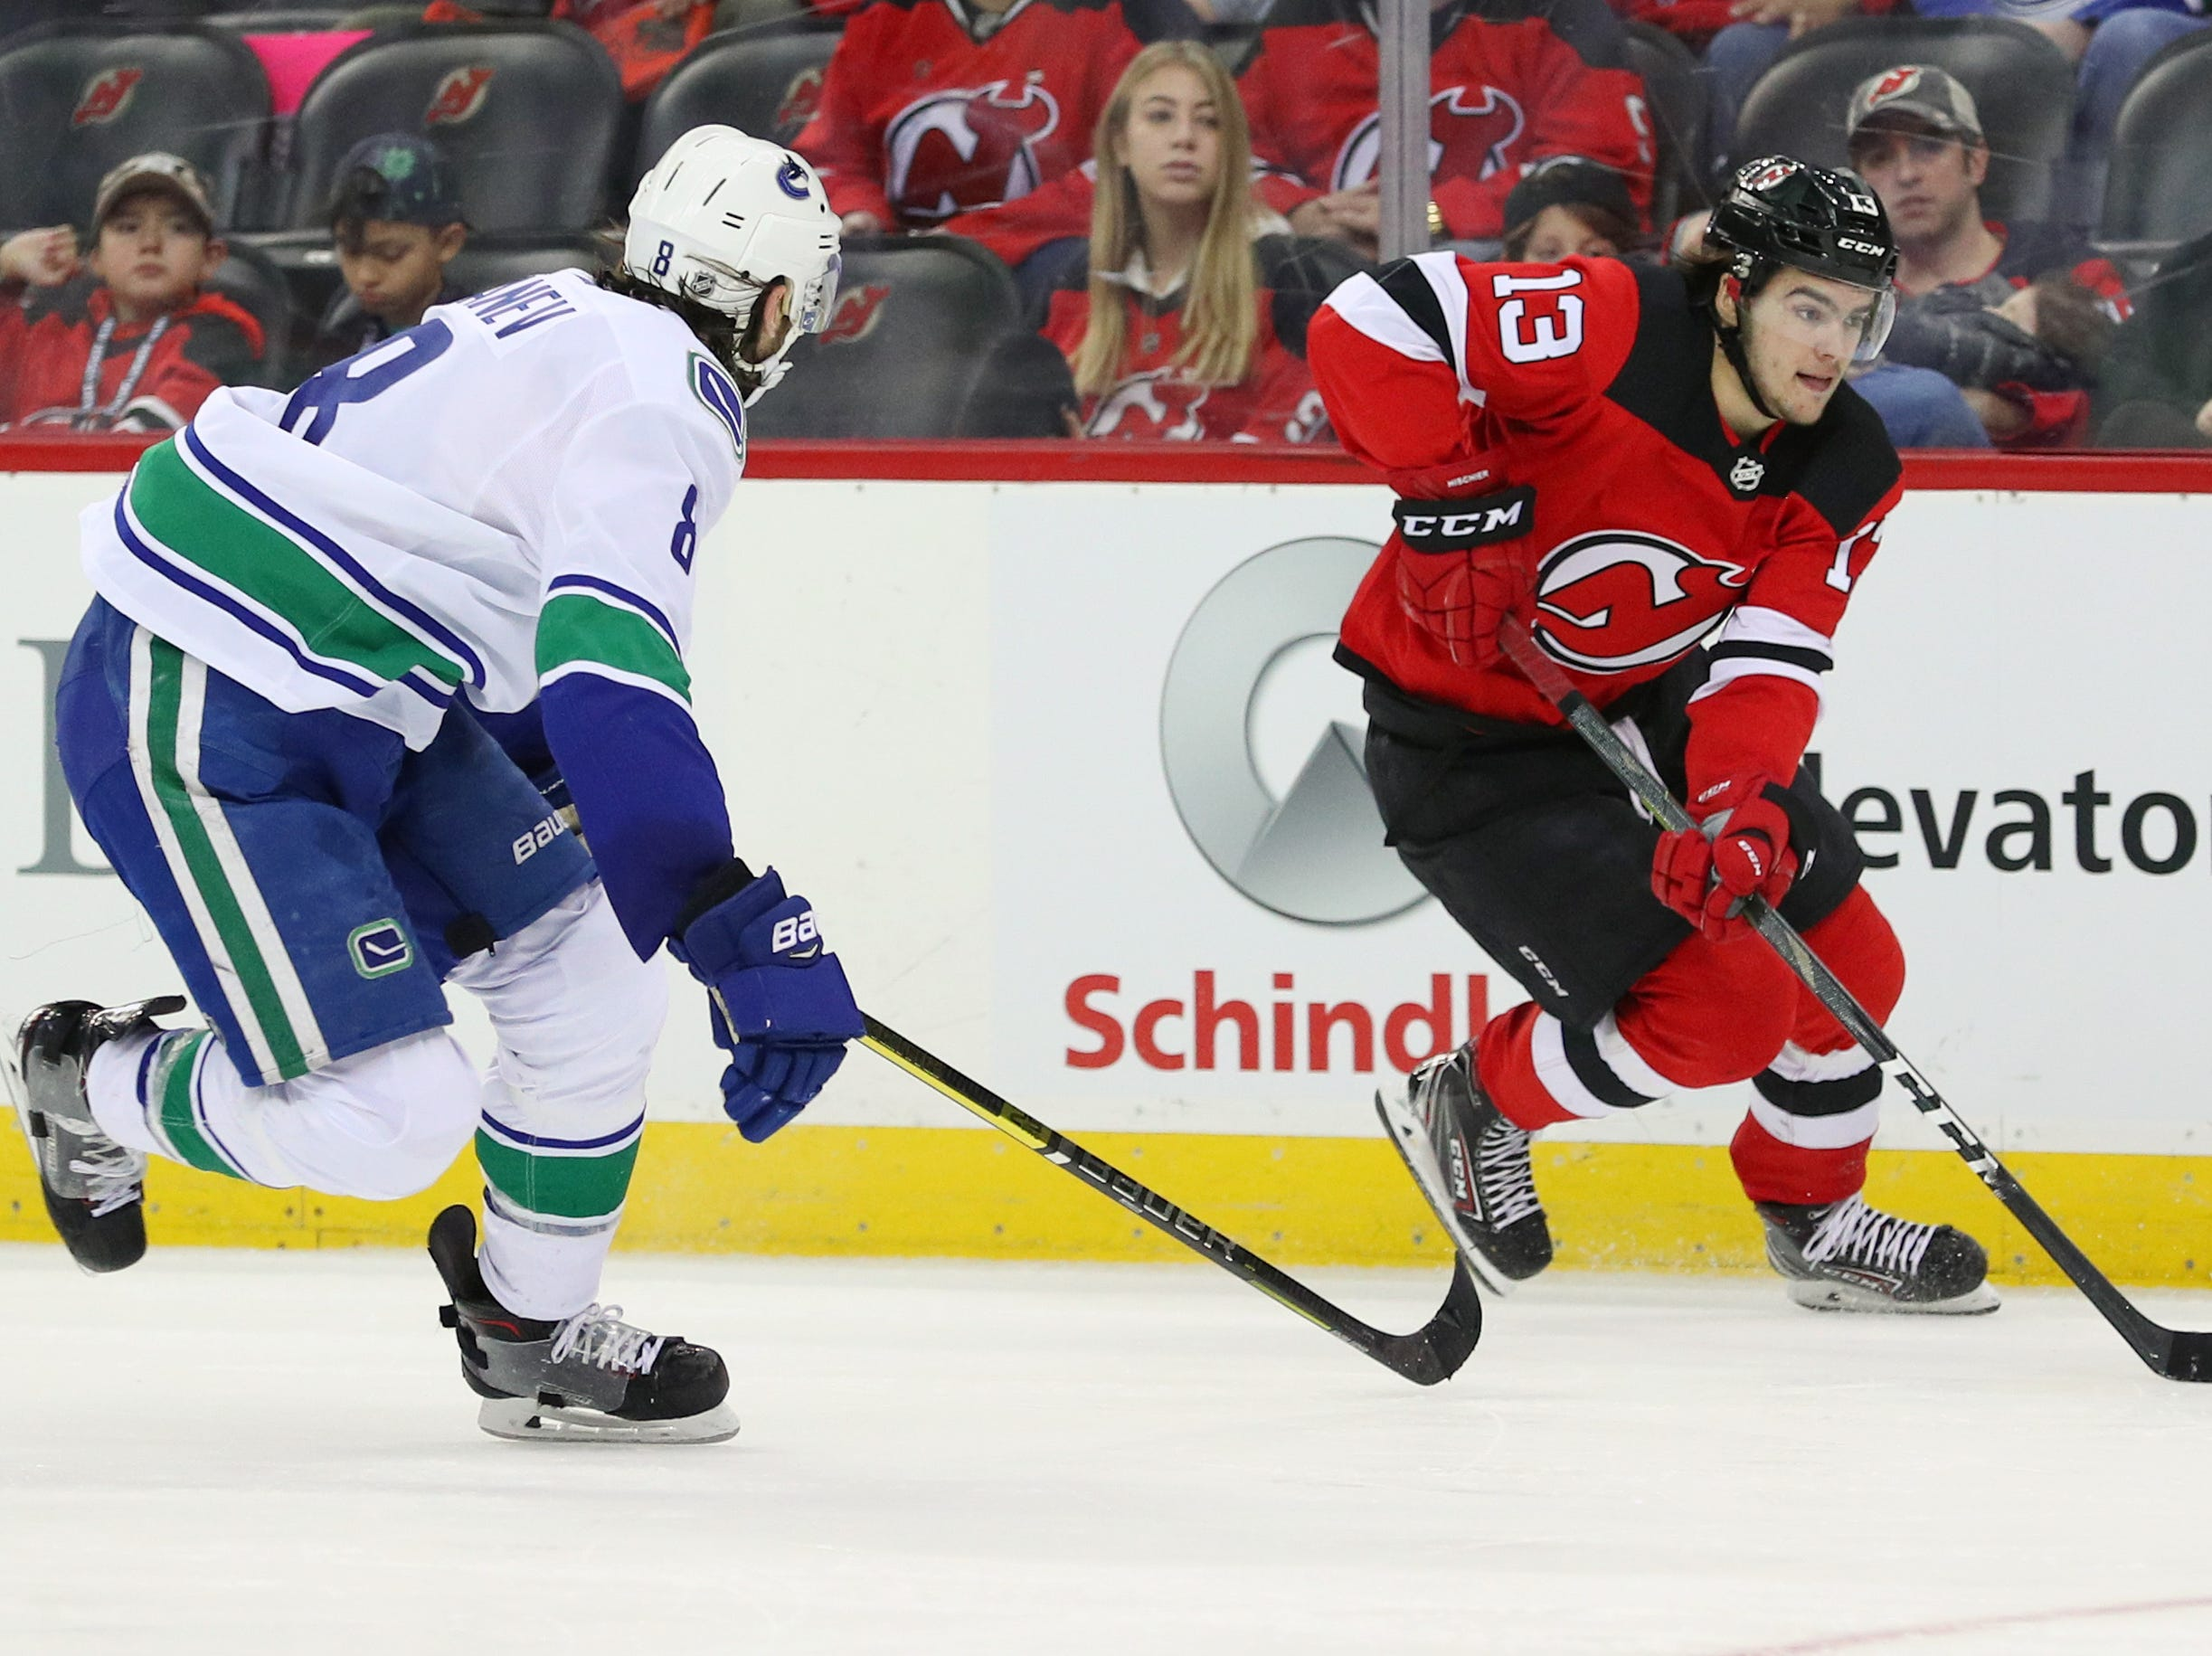 Dec 31, 2018; Newark, NJ, USA; New Jersey Devils center Nico Hischier (13) skates with the puck while being defended by Vancouver Canucks defenseman Christopher Tanev (8) during the second period at Prudential Center.